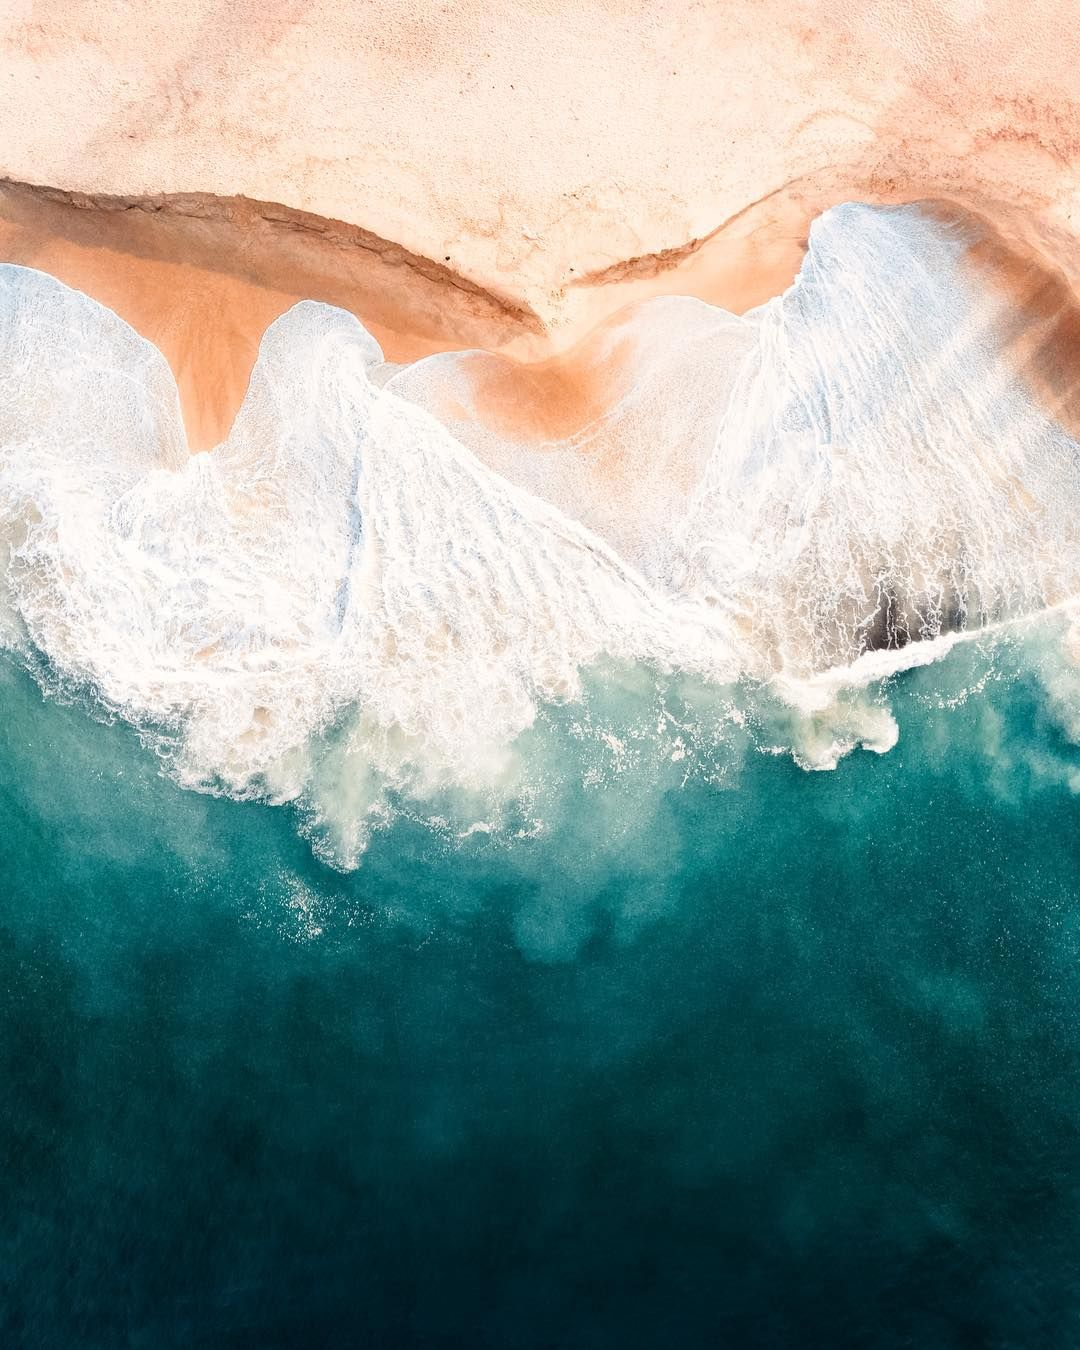 Laguna Beach From Above - Spectacular Drone Photography By Mike Soulopulos